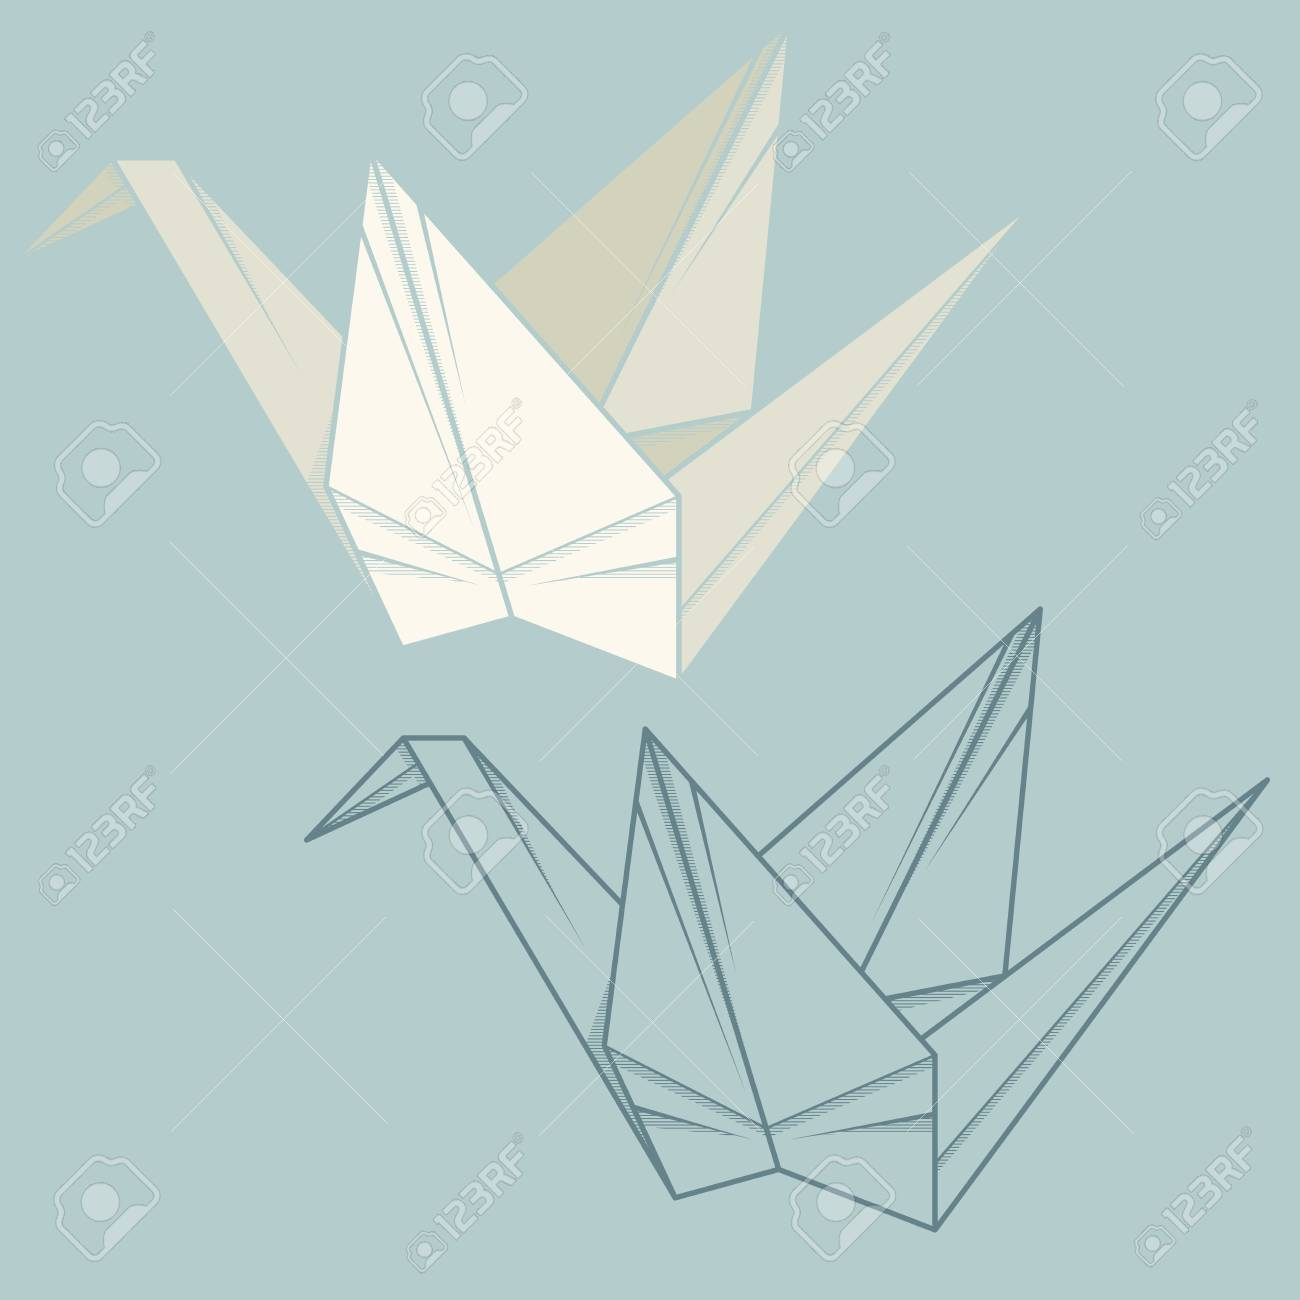 Set Of Simple Illustration Of Paper Crane Origami Royalty Free